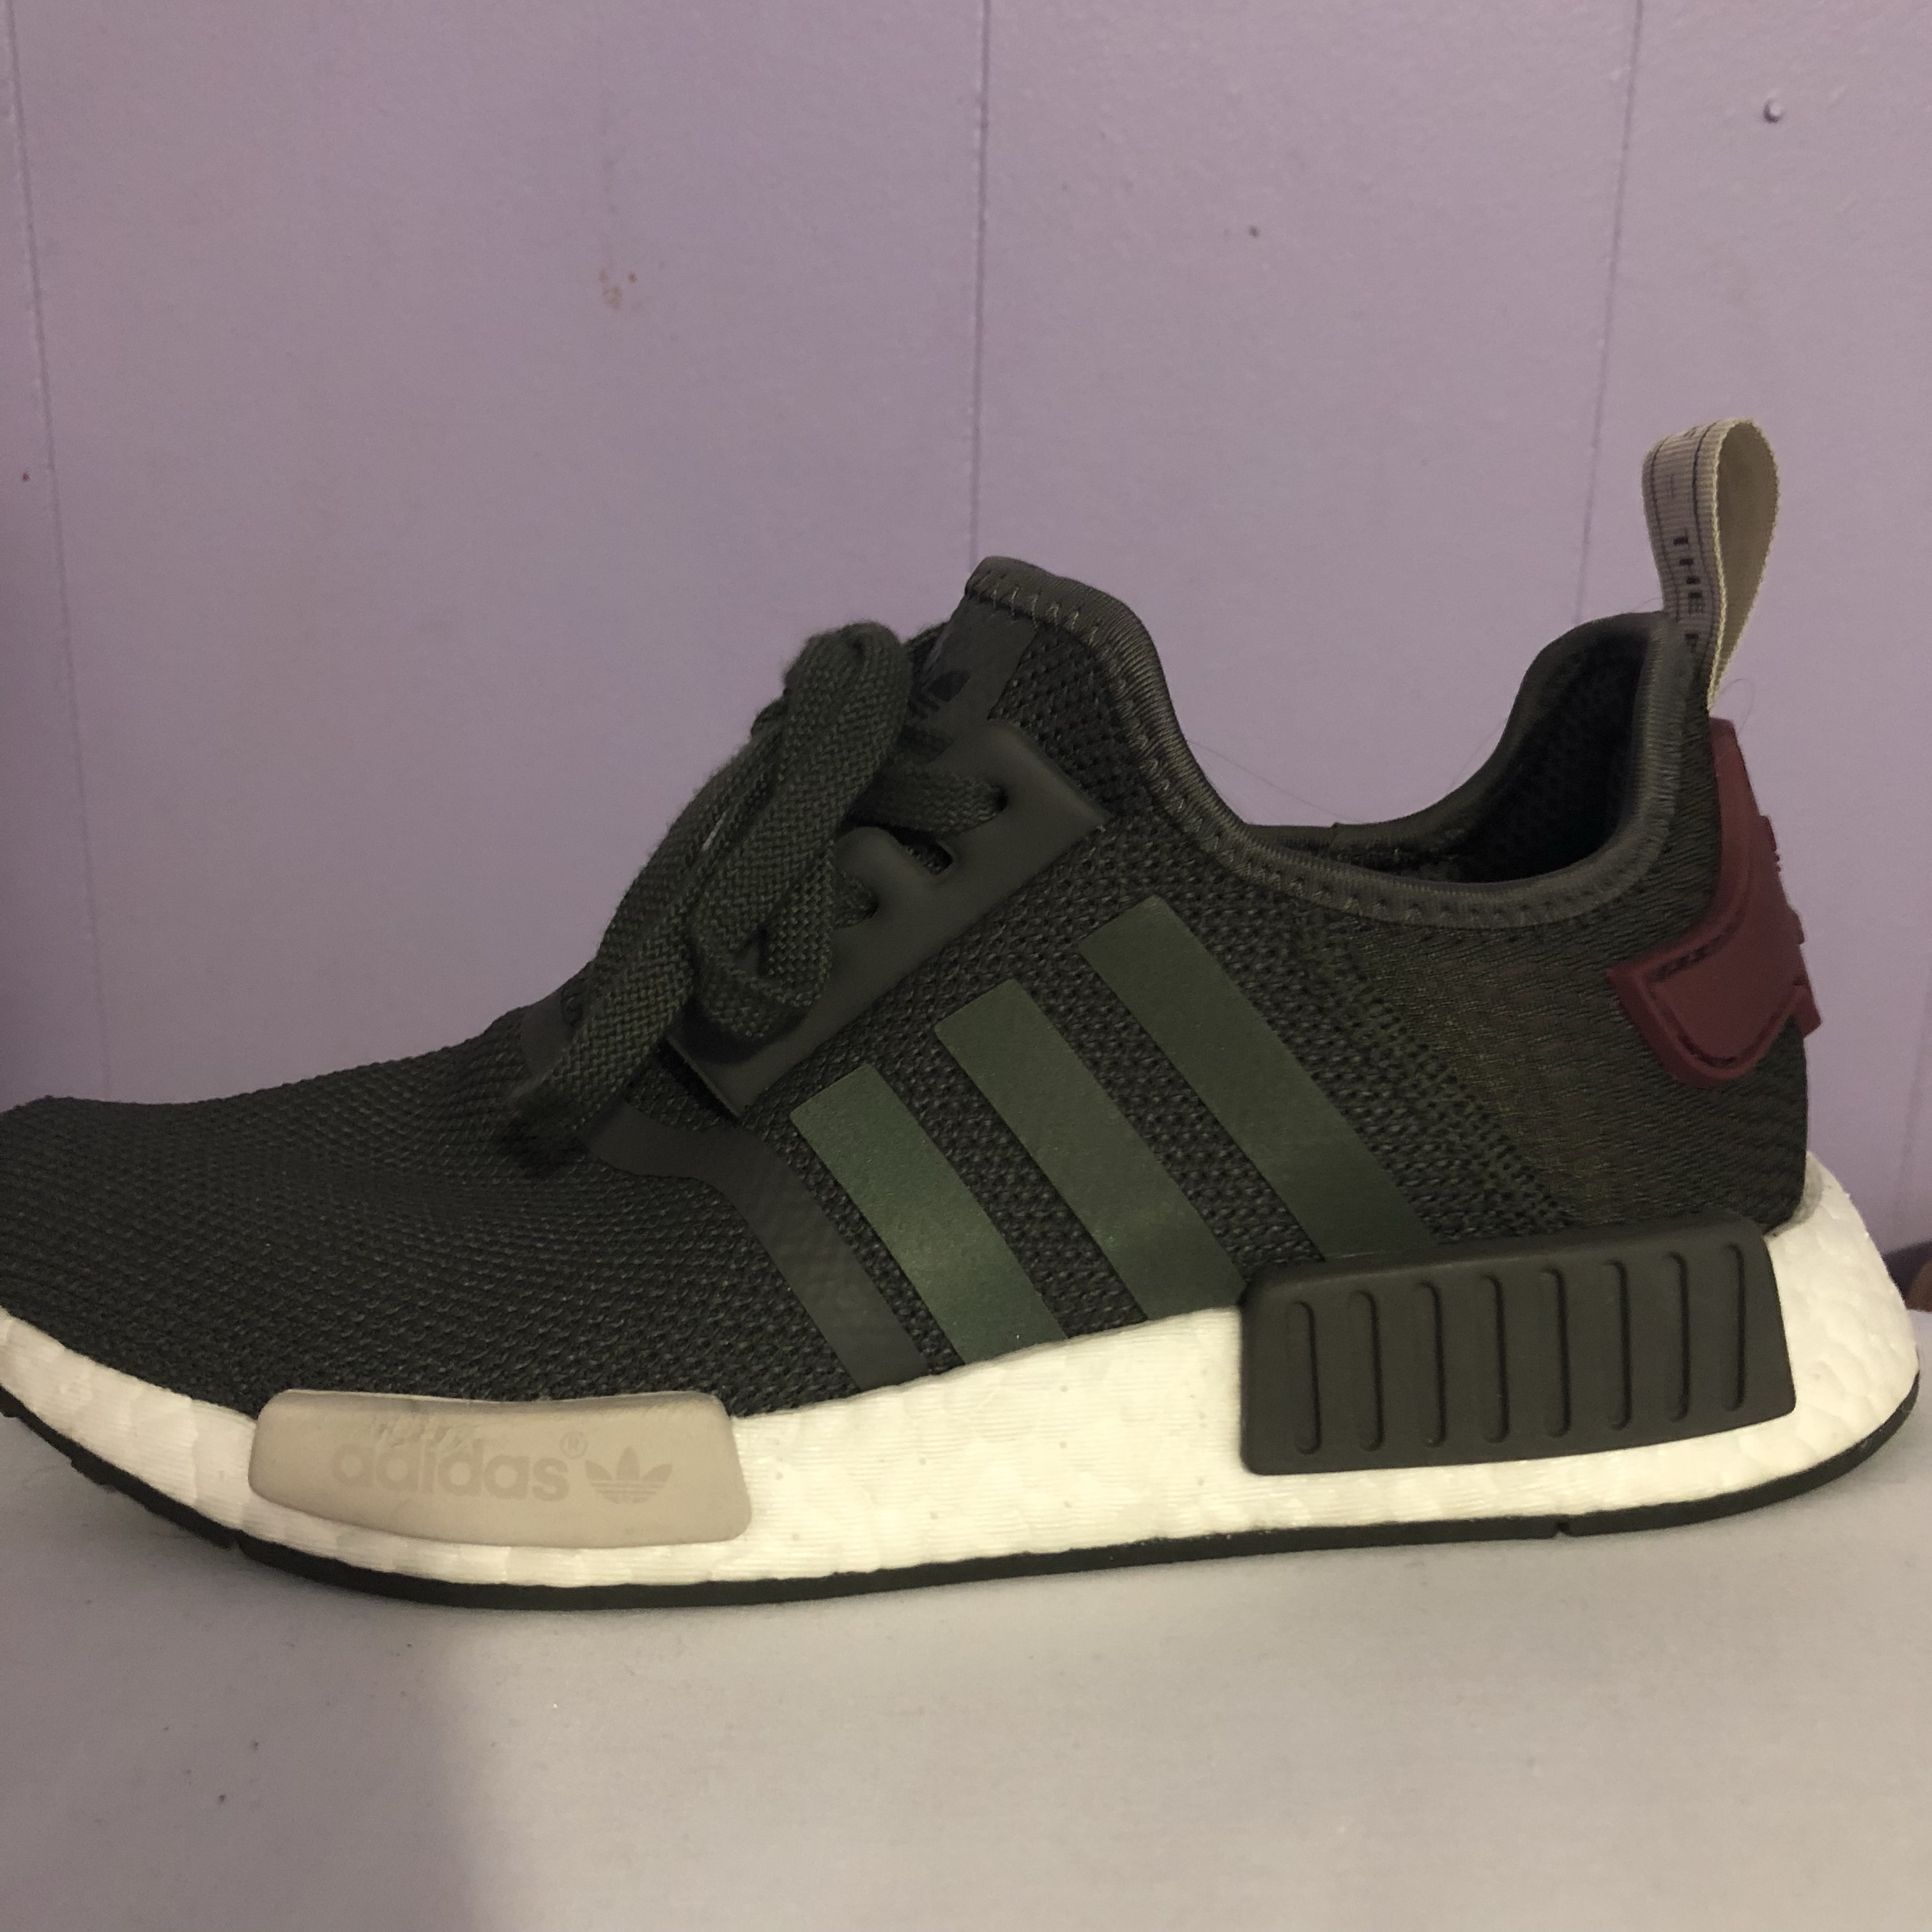 Adidas NMD Womens Grey And Maroon hopewontpaythewages.co.uk